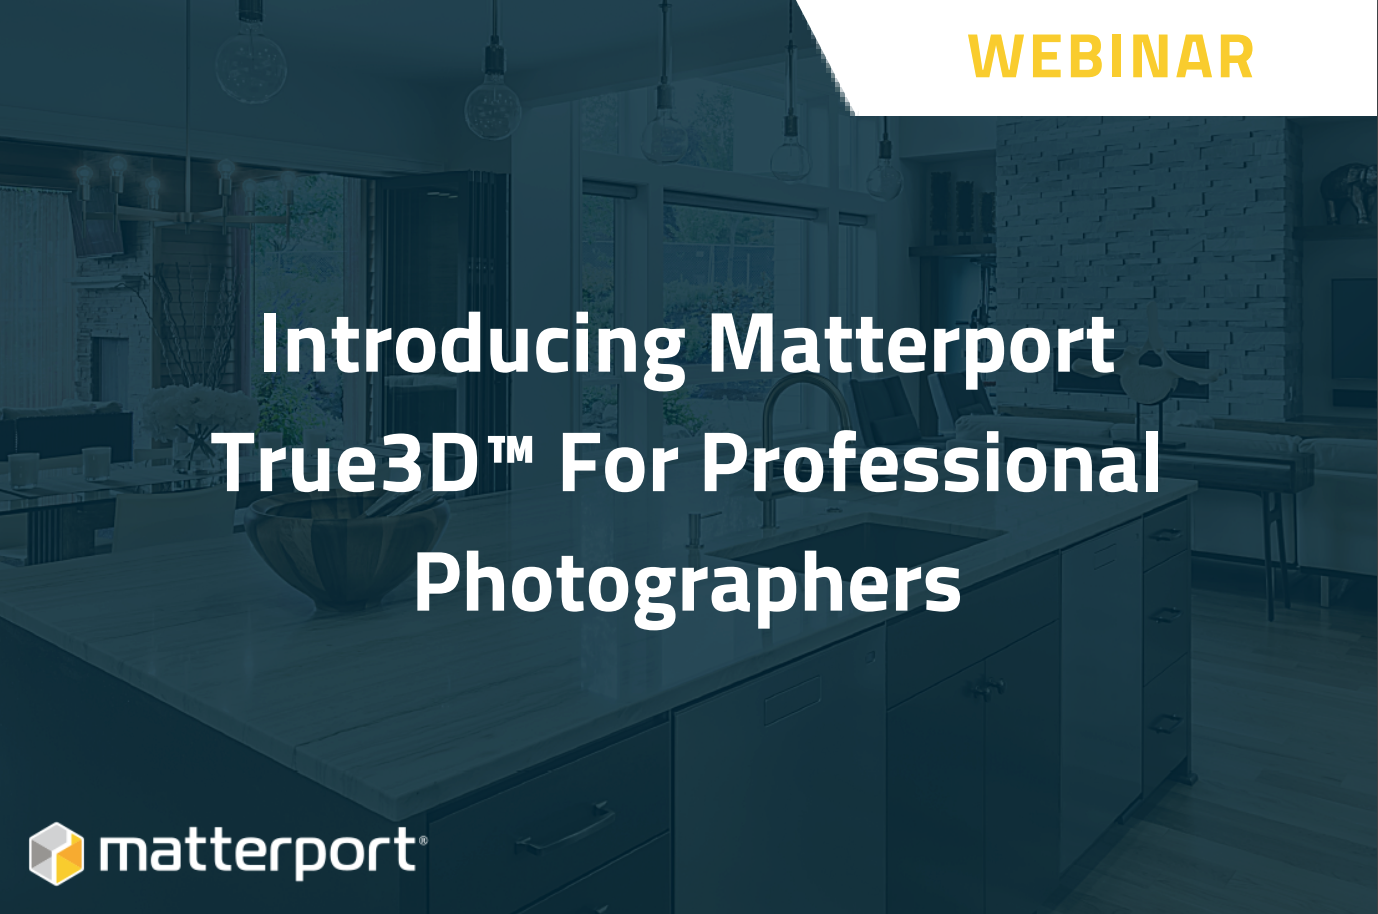 Introducing Matterport True3D™ For Professional Photographers